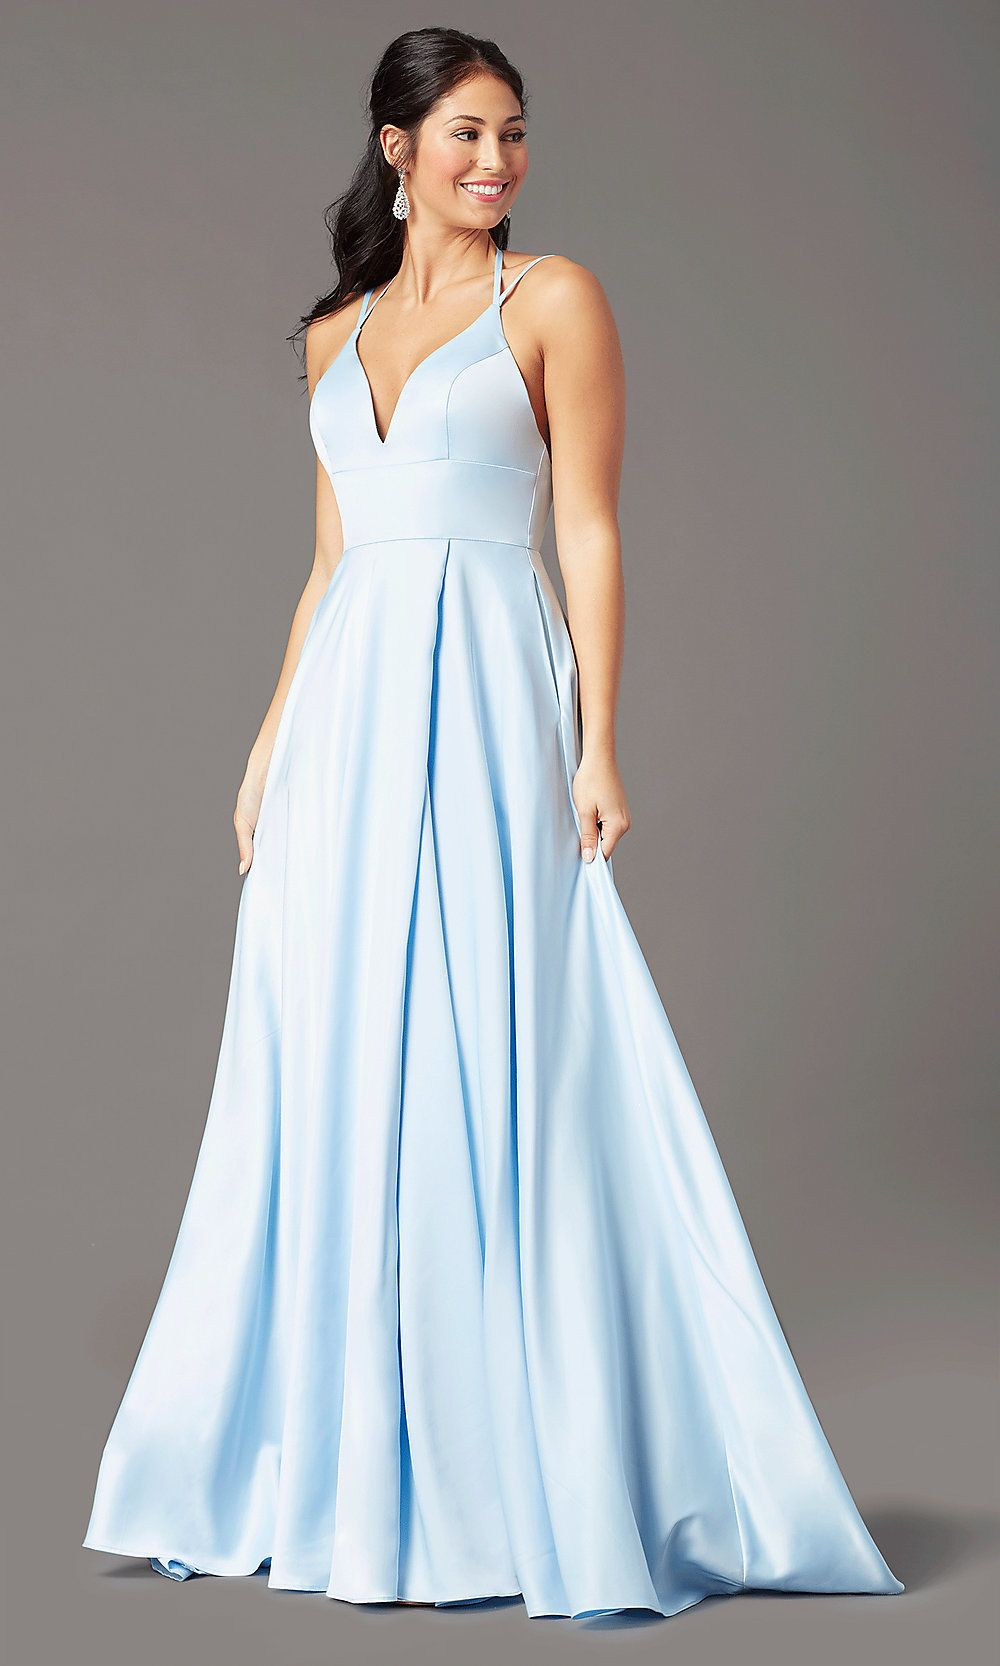 Long Strappy-Open-Back Formal Prom Dress - PromGirl ...